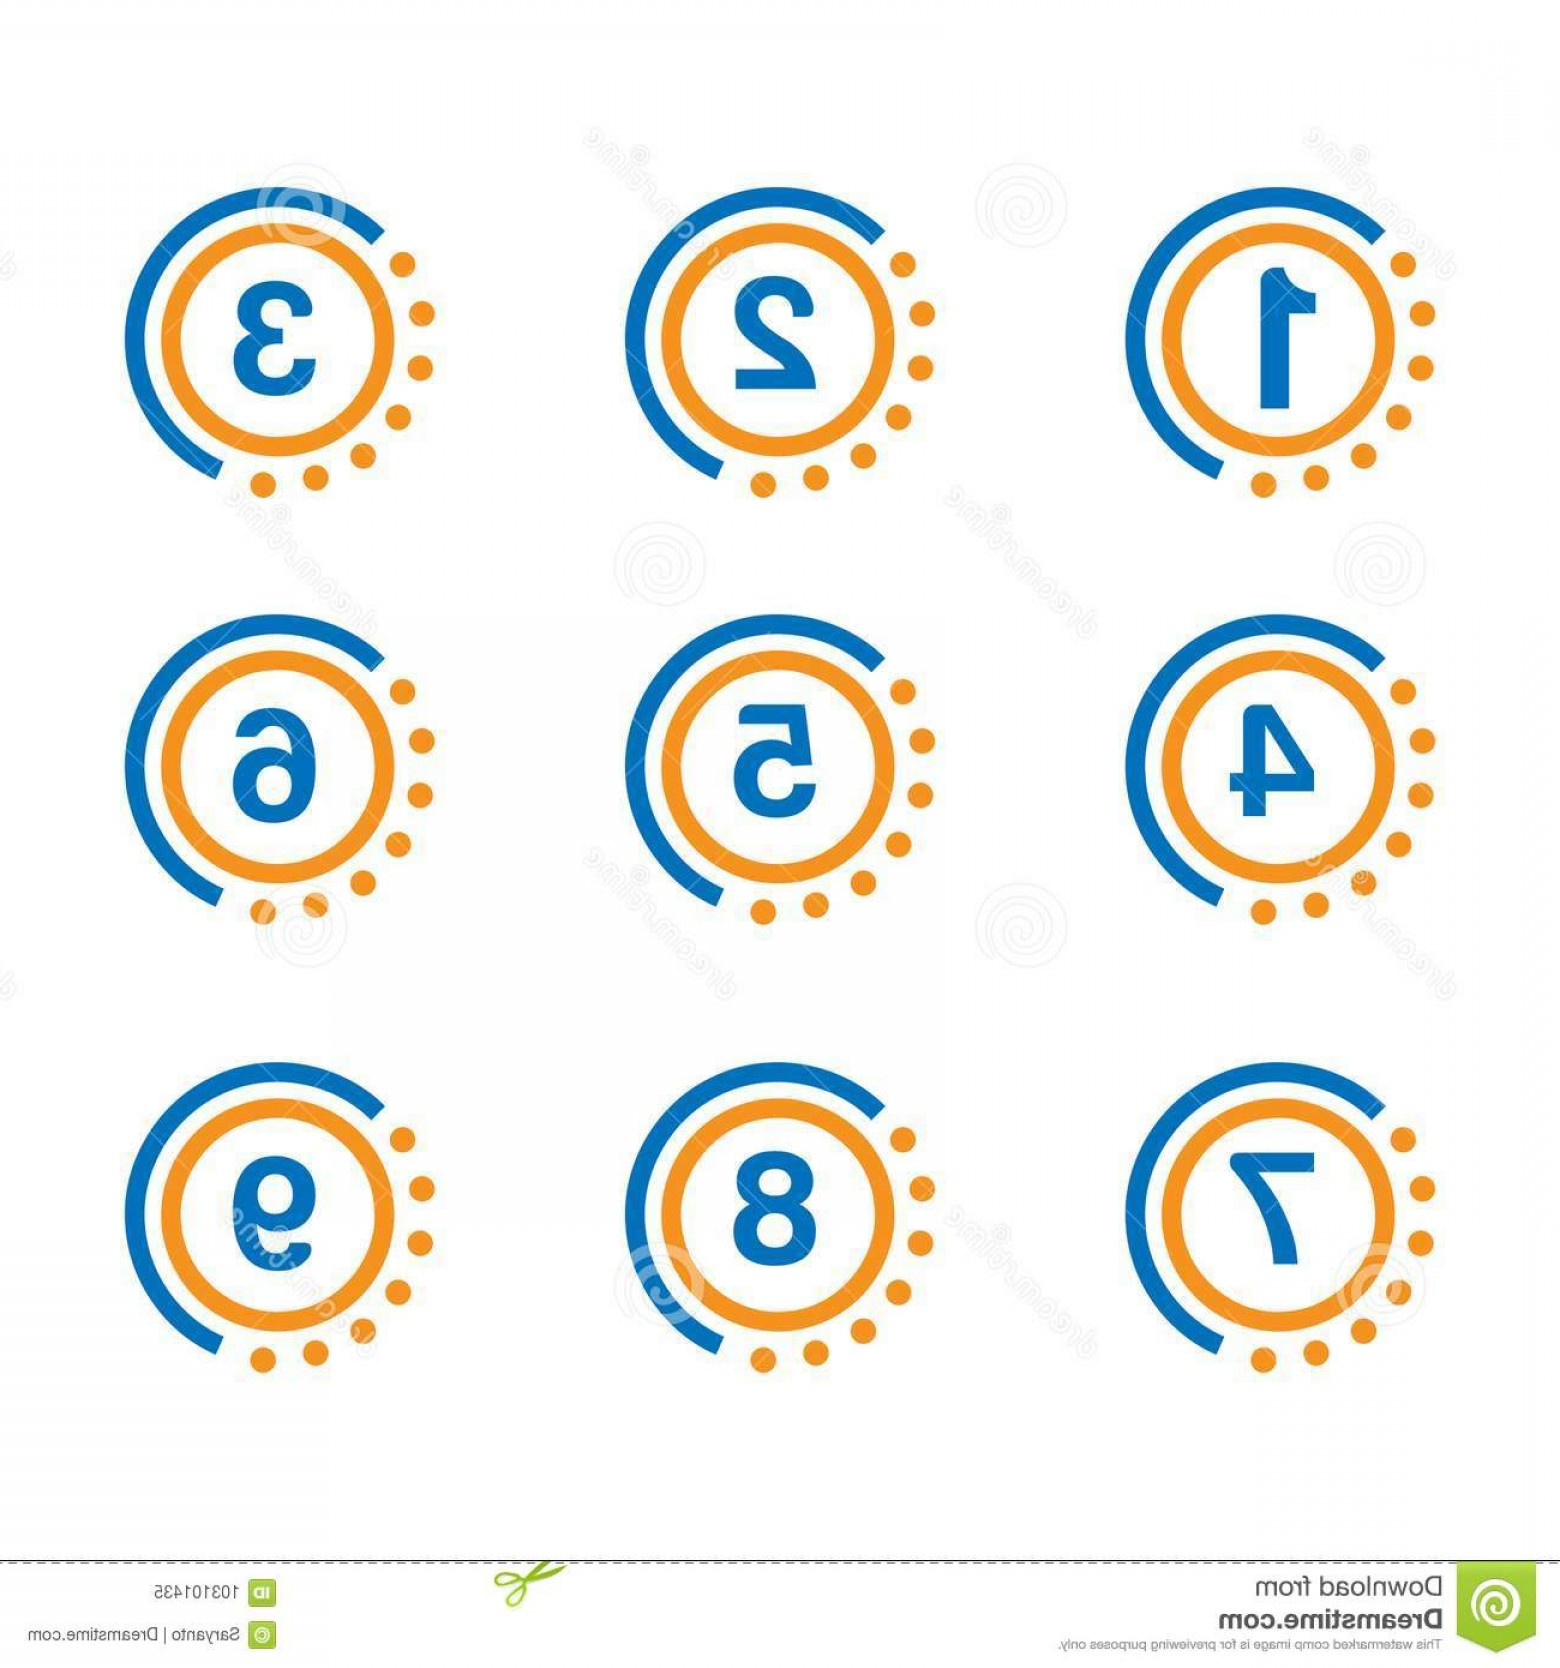 Blue And Orange Circle Vector: Number Set Button Blue Orange Circle Number Set Button Blue Orange Circle Eps File Available See More Images Image